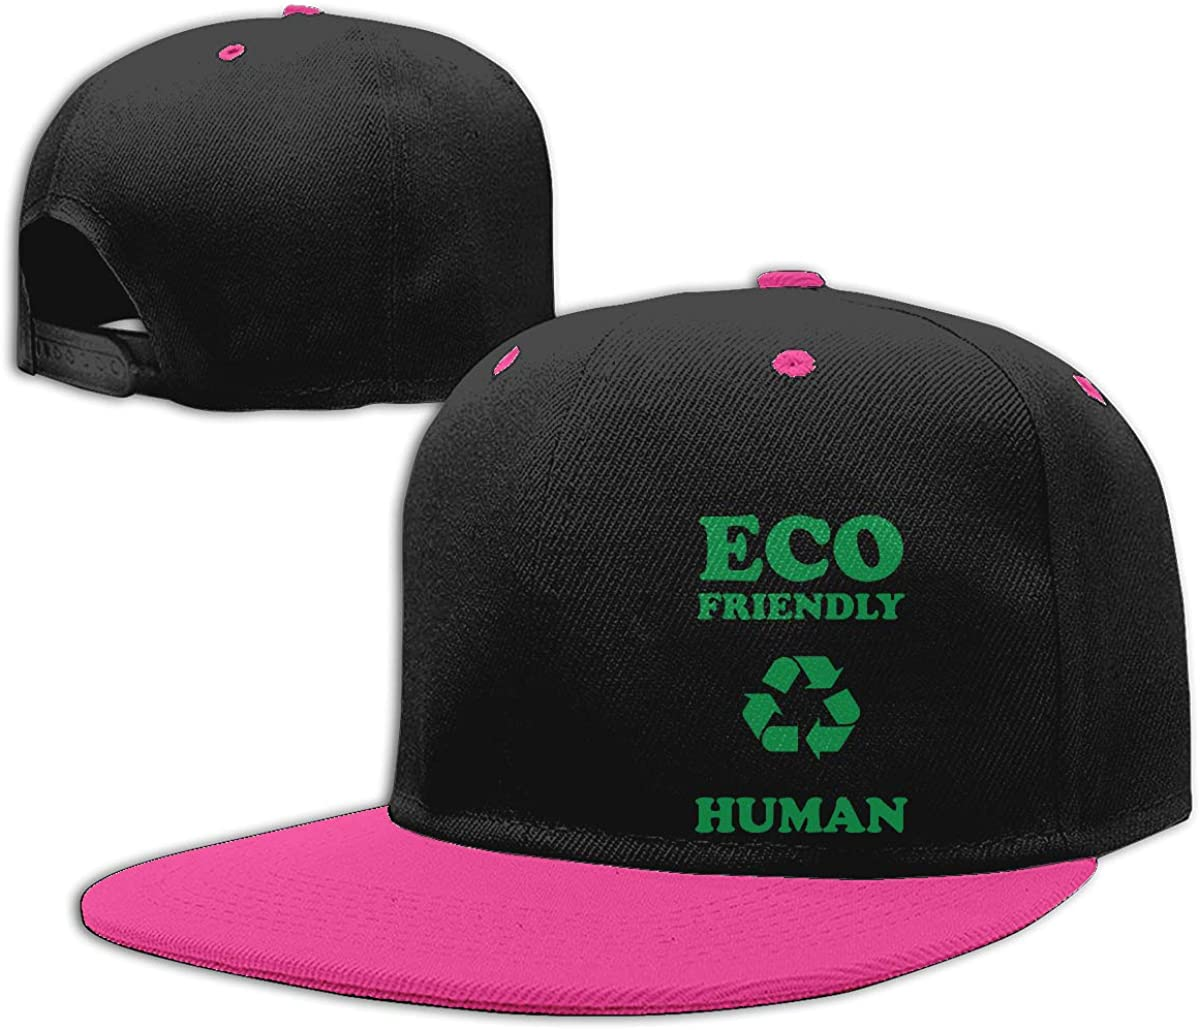 Eco Friendly Human Awareness Fashion Flat Peaked Baseball Caps Men and Women Trucker Cap